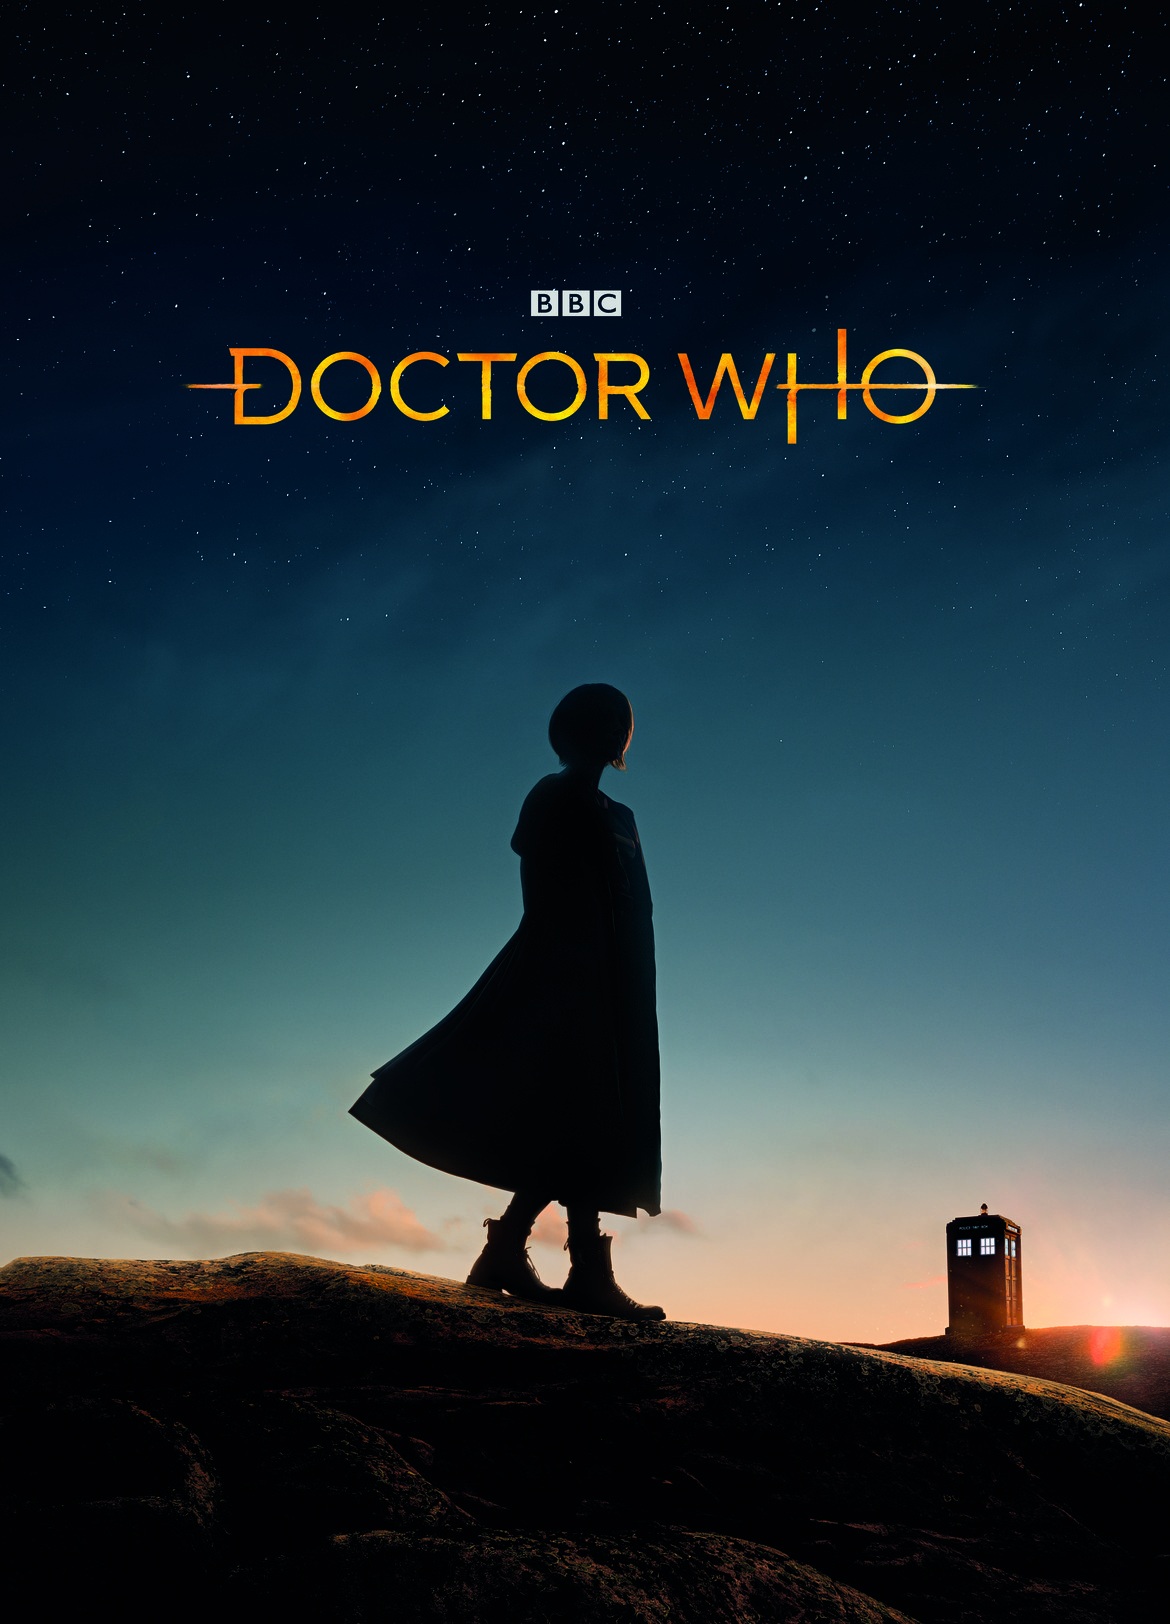 Doctor Who- 13th Doctor played by Jodie Whittaker BBCA poster art